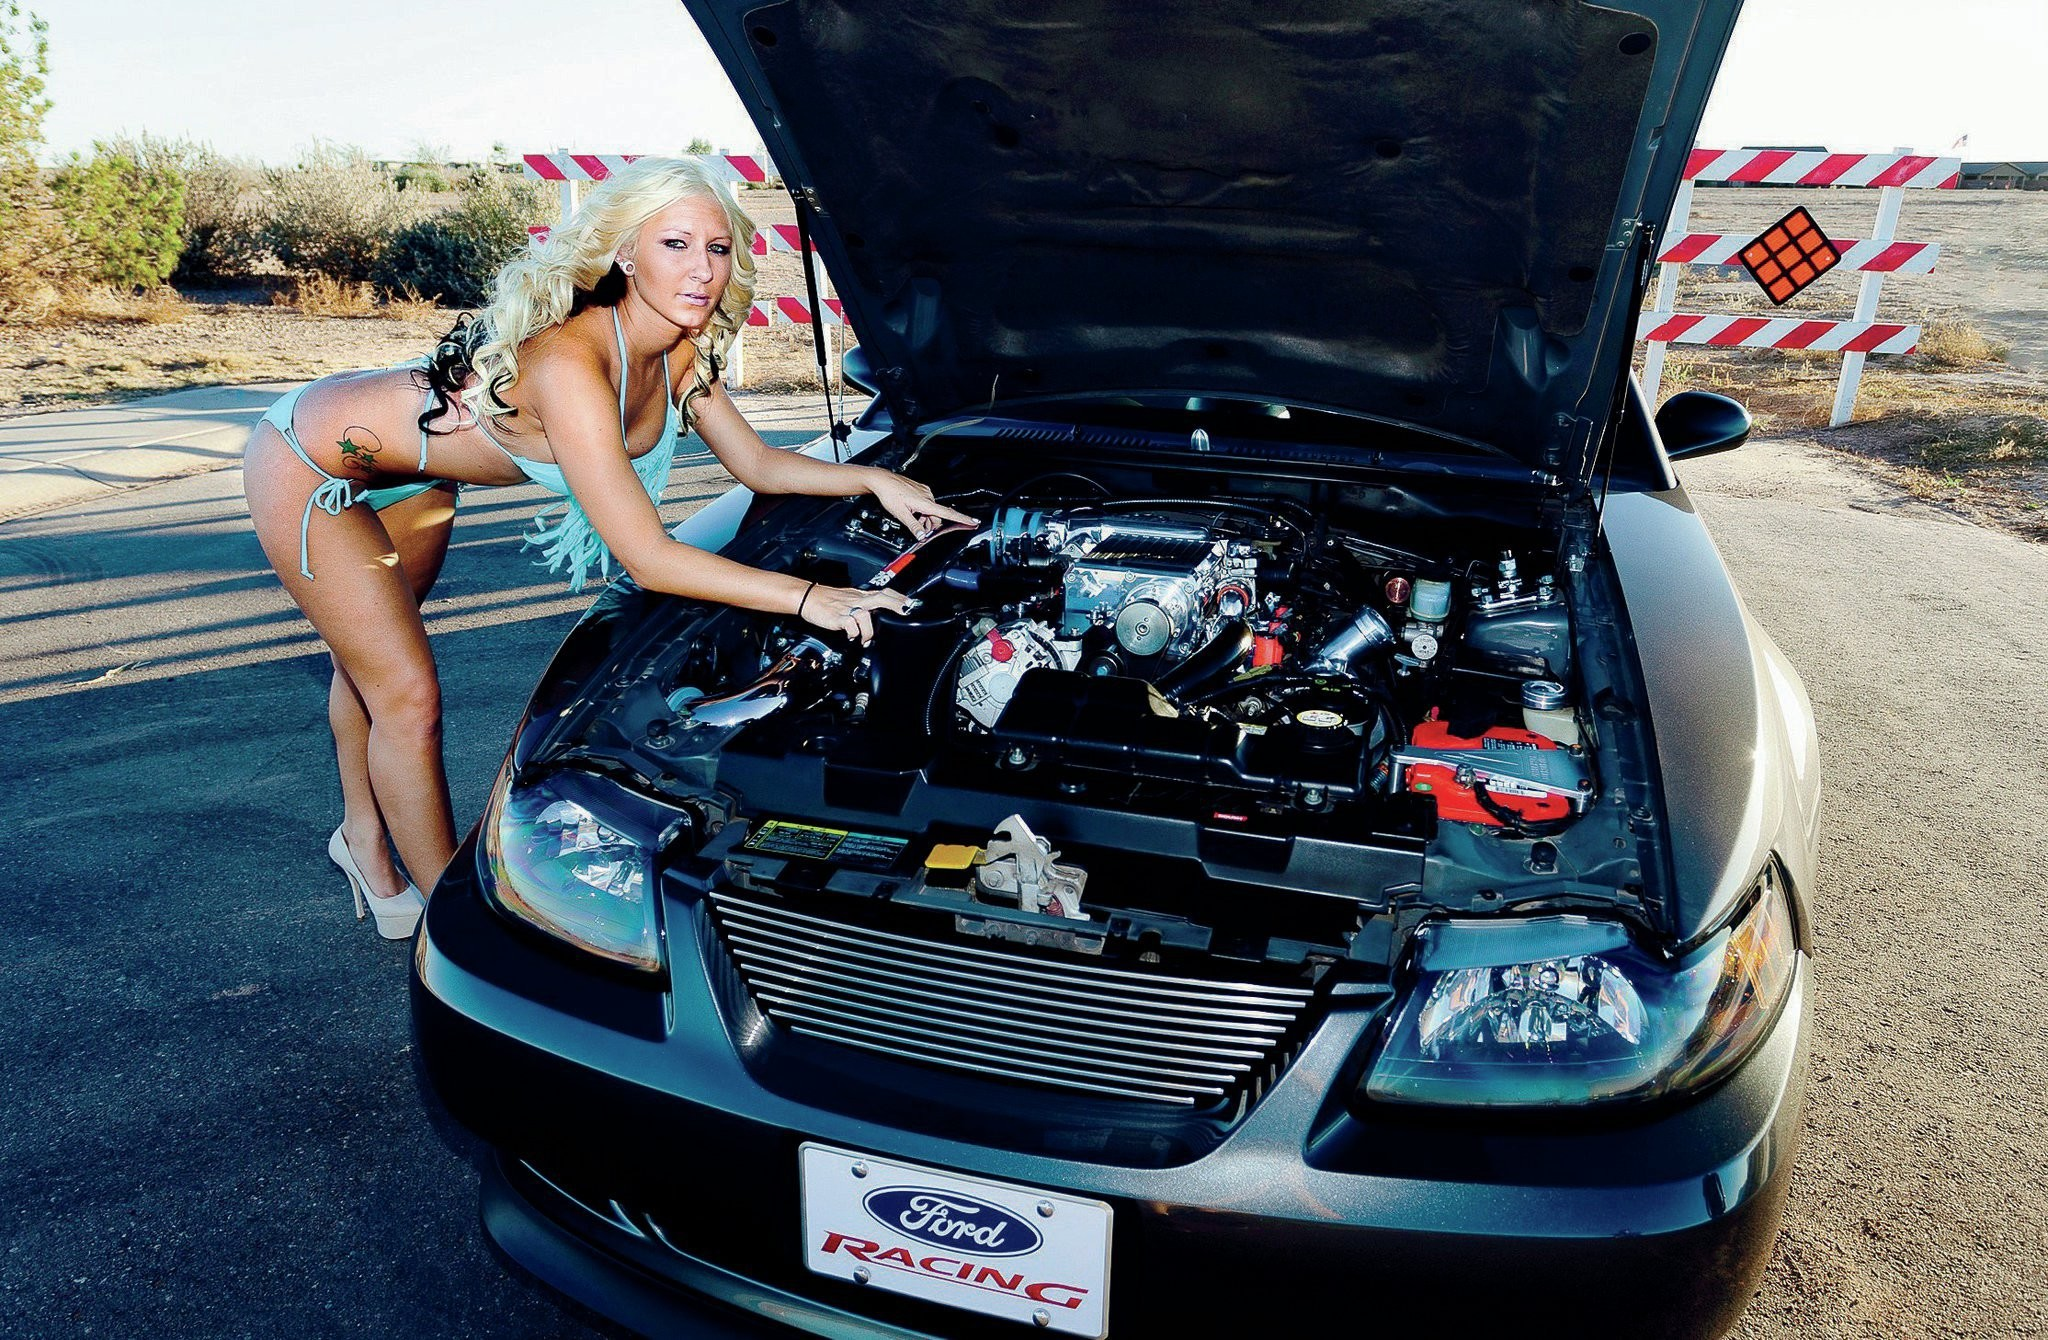 2003-ford-mustang-engine-view-emily-oney.jpg (2048×1340) | Cars And Girls |  Pinterest | Cars